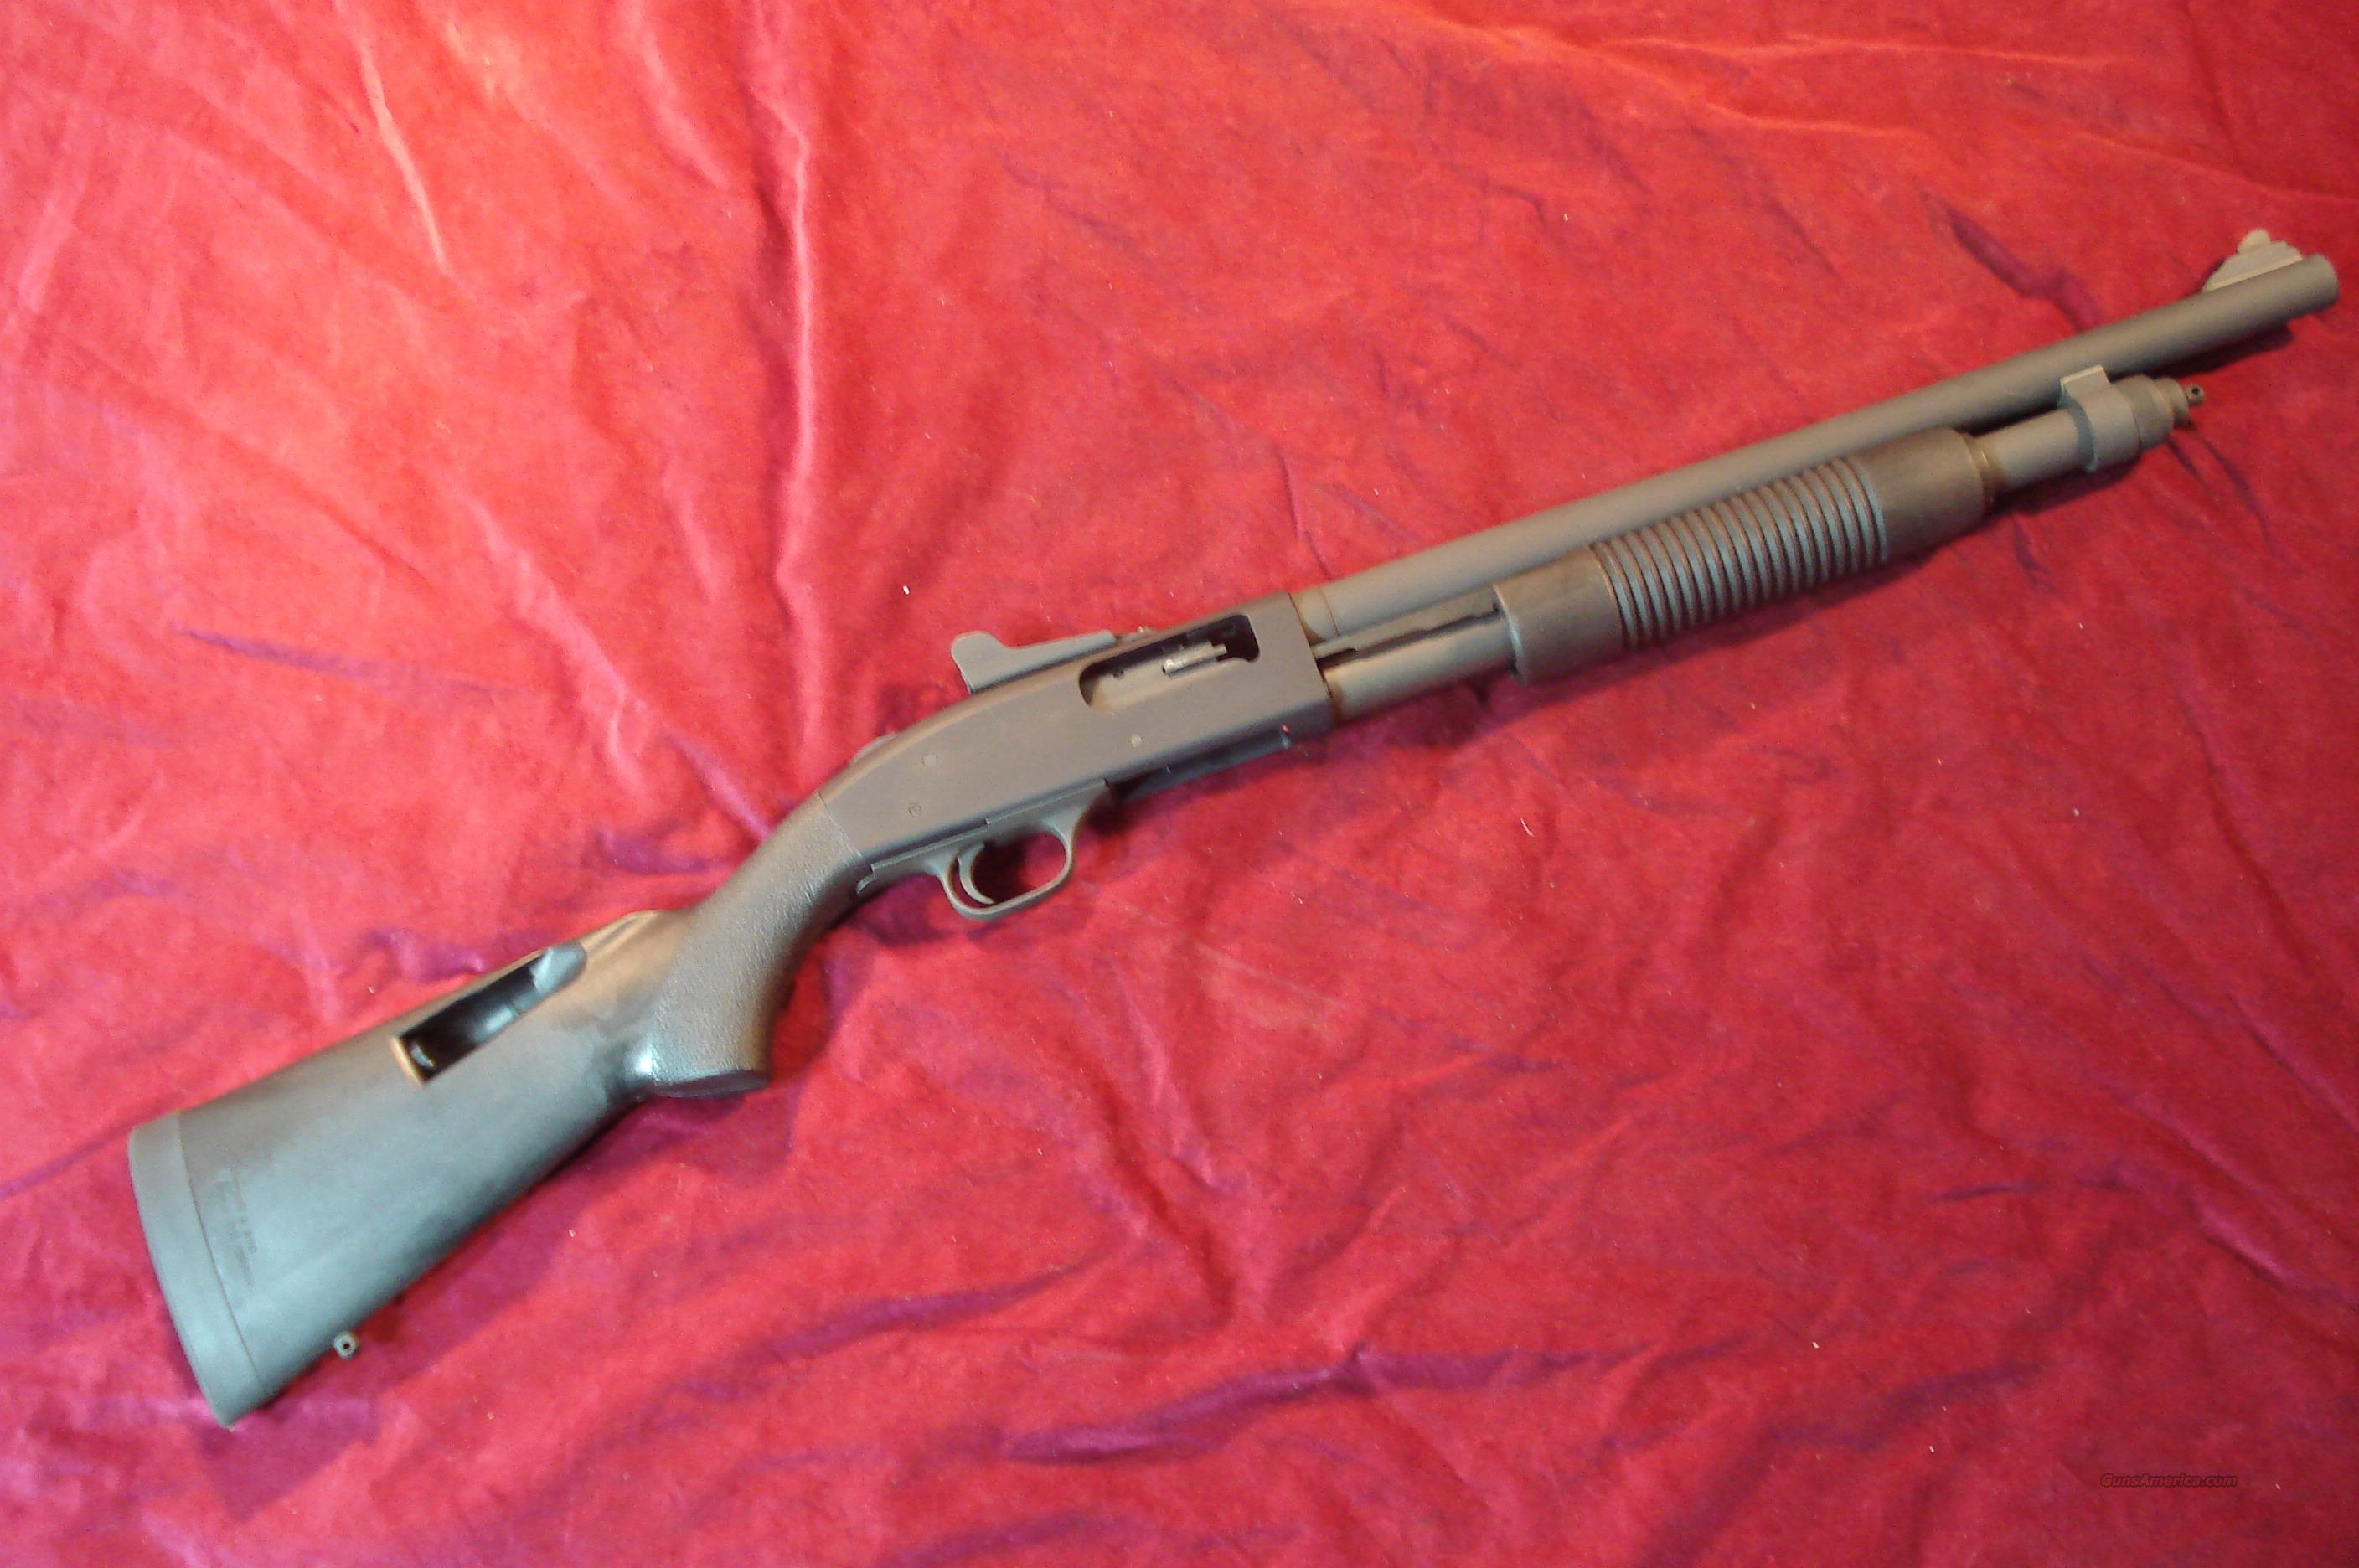 MOSSBERG 590A1 PERSUADER